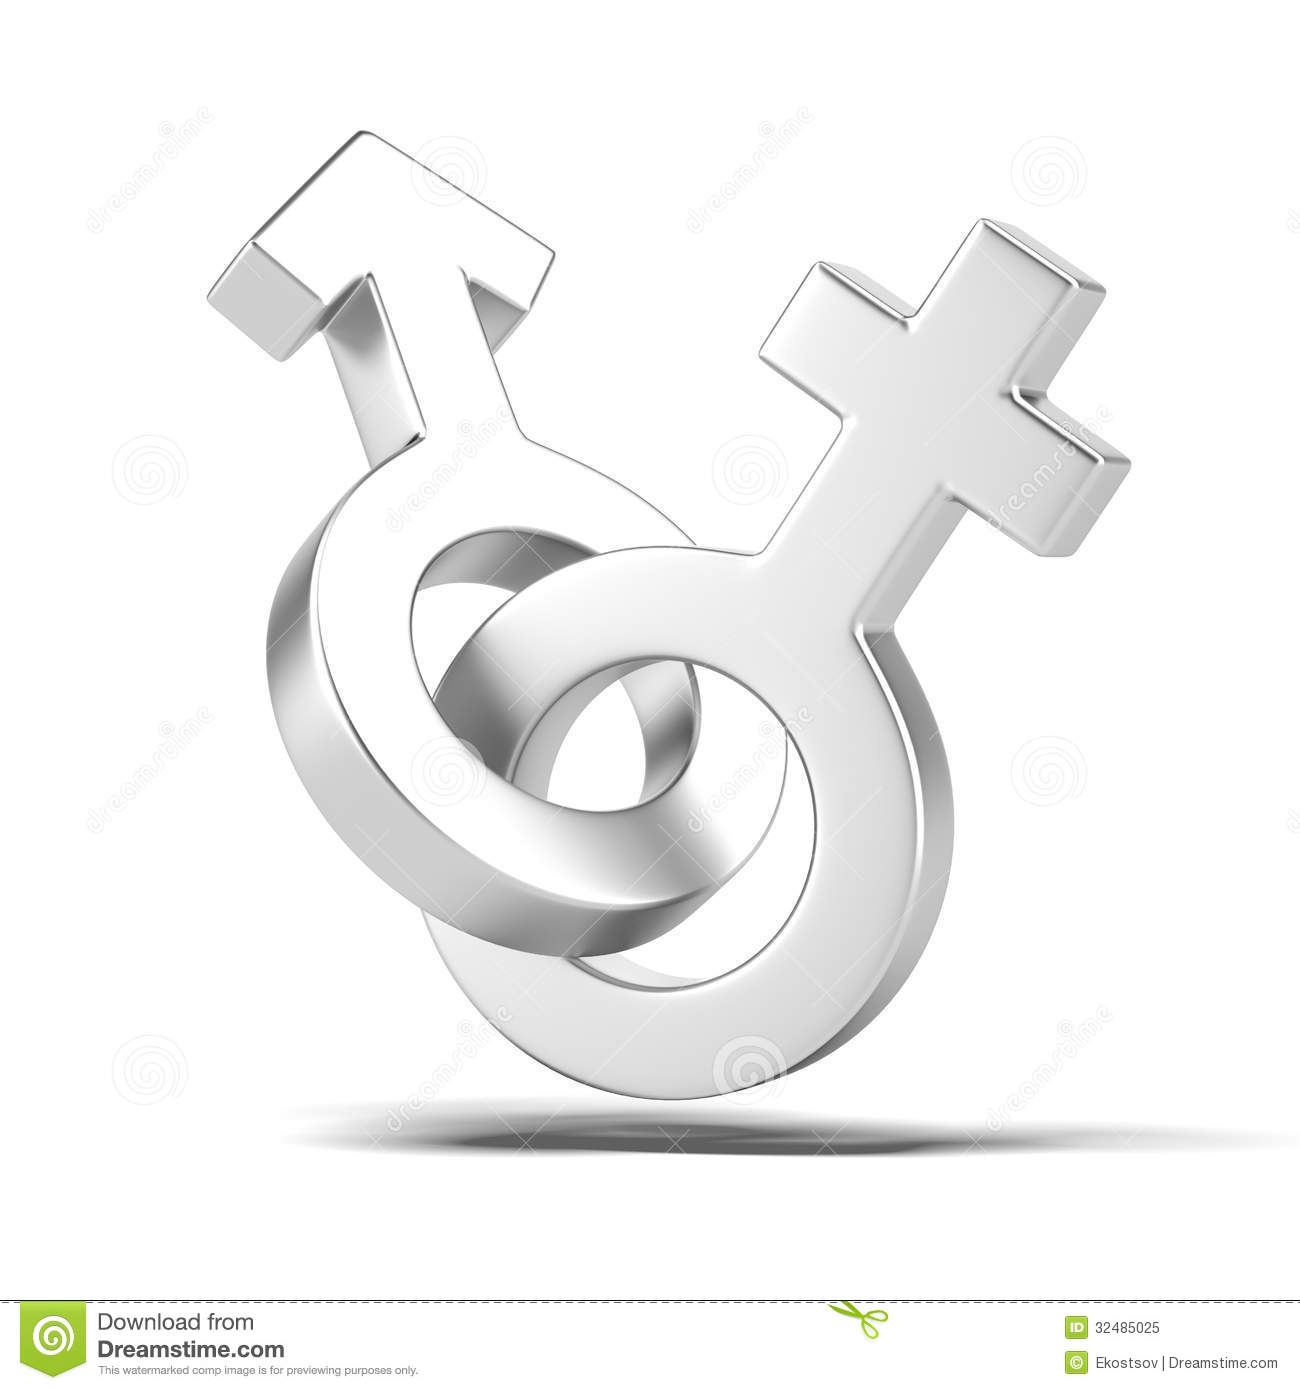 New Zealand Job Interview Male And Female Sex Symbols Royalty Free Stock Photo